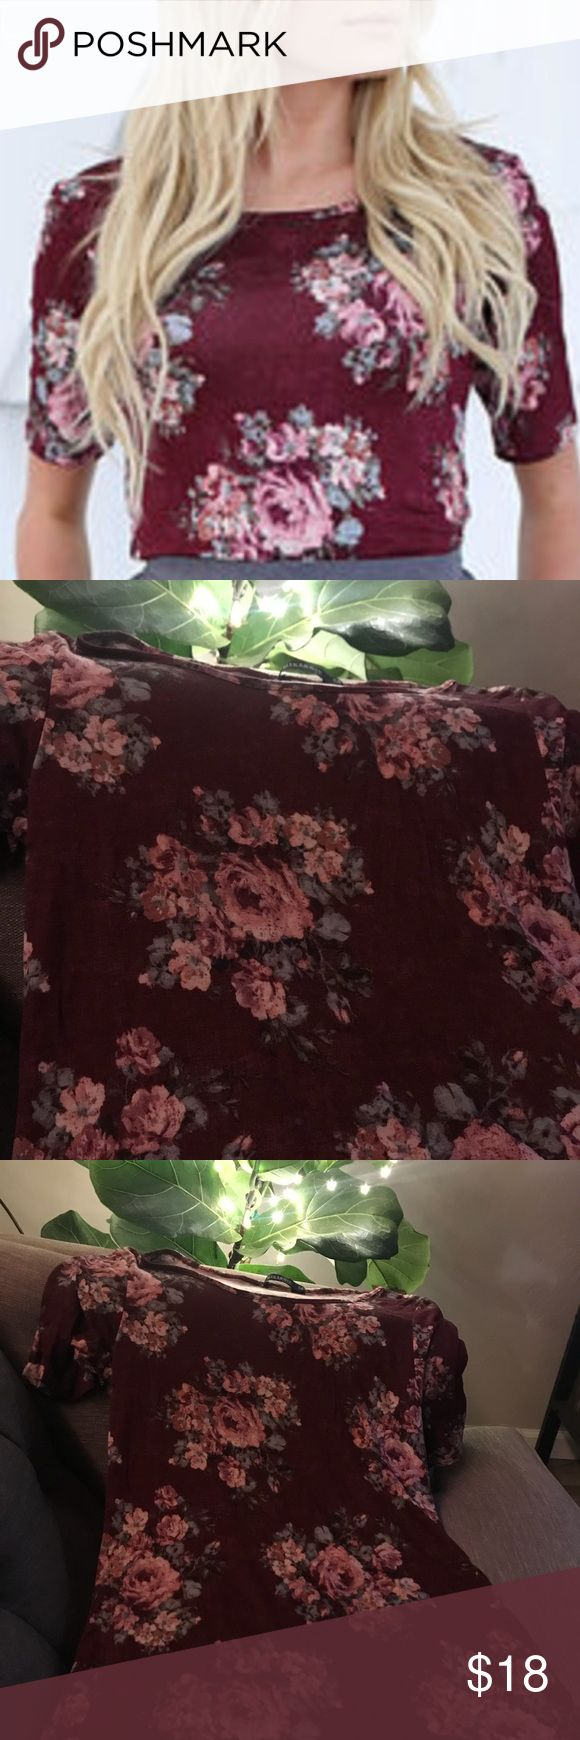 Mikarose burgundy floral medium blouse Floral burgundy top pairs beautifully with a sweet skirt and ankle boots or jeans and flats. Light and soft rayon fabric. Fits true to size medium, figure hugging. Machine wash, hang dry. Mikarose Tops Blouses